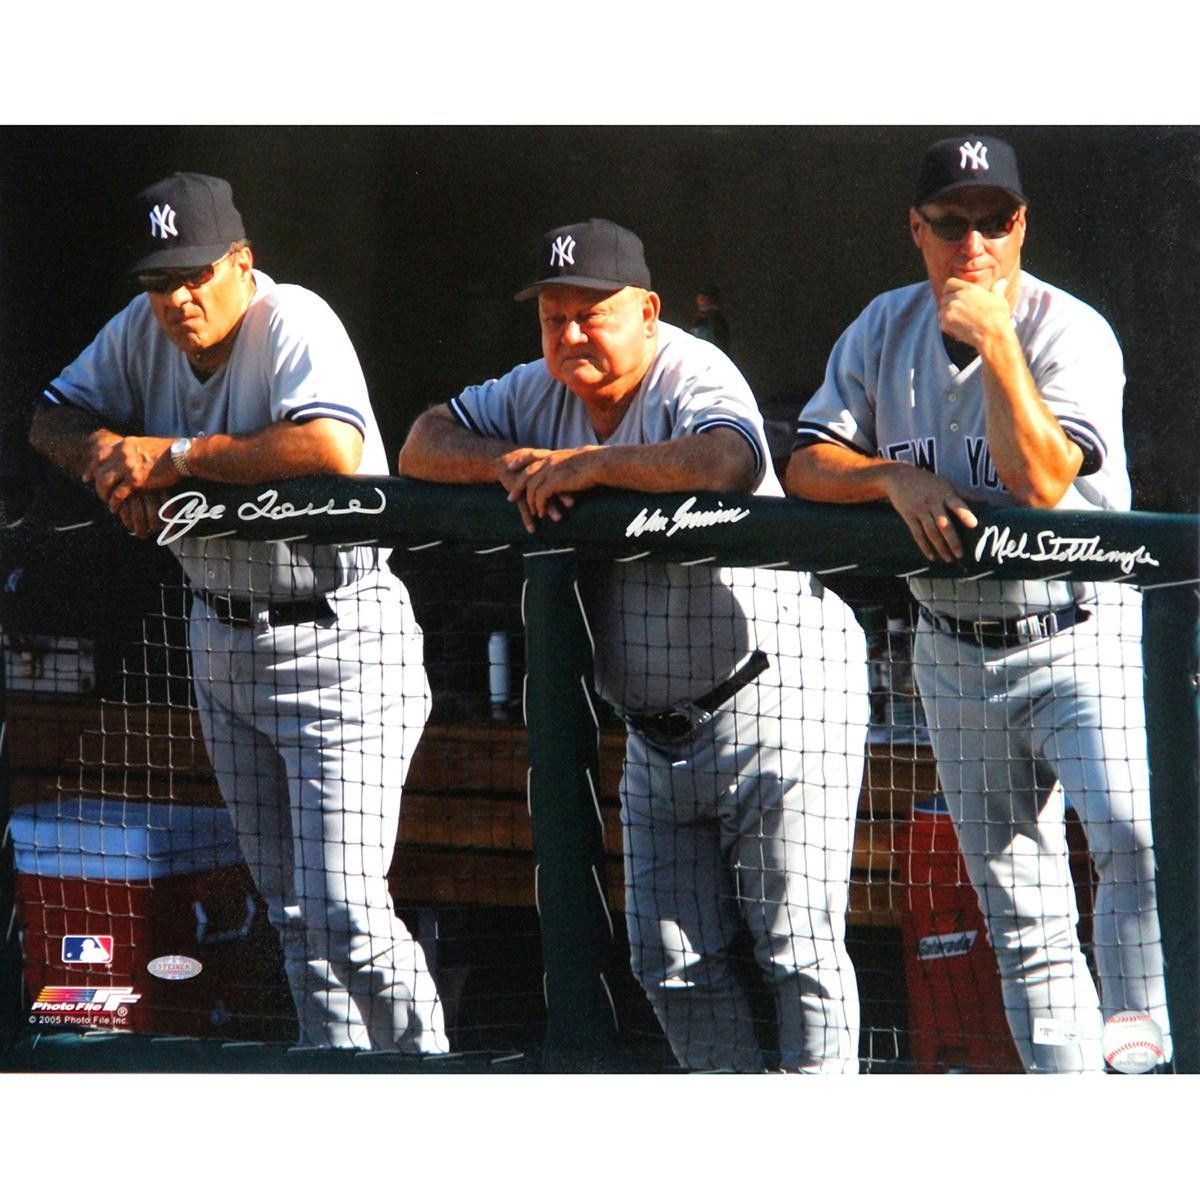 Joe Torre Don Zimmer And Mel Stottlemyre Triple Signed Dugout 16x20 Photo Mlb Auth Joe Torre Dugout Sports